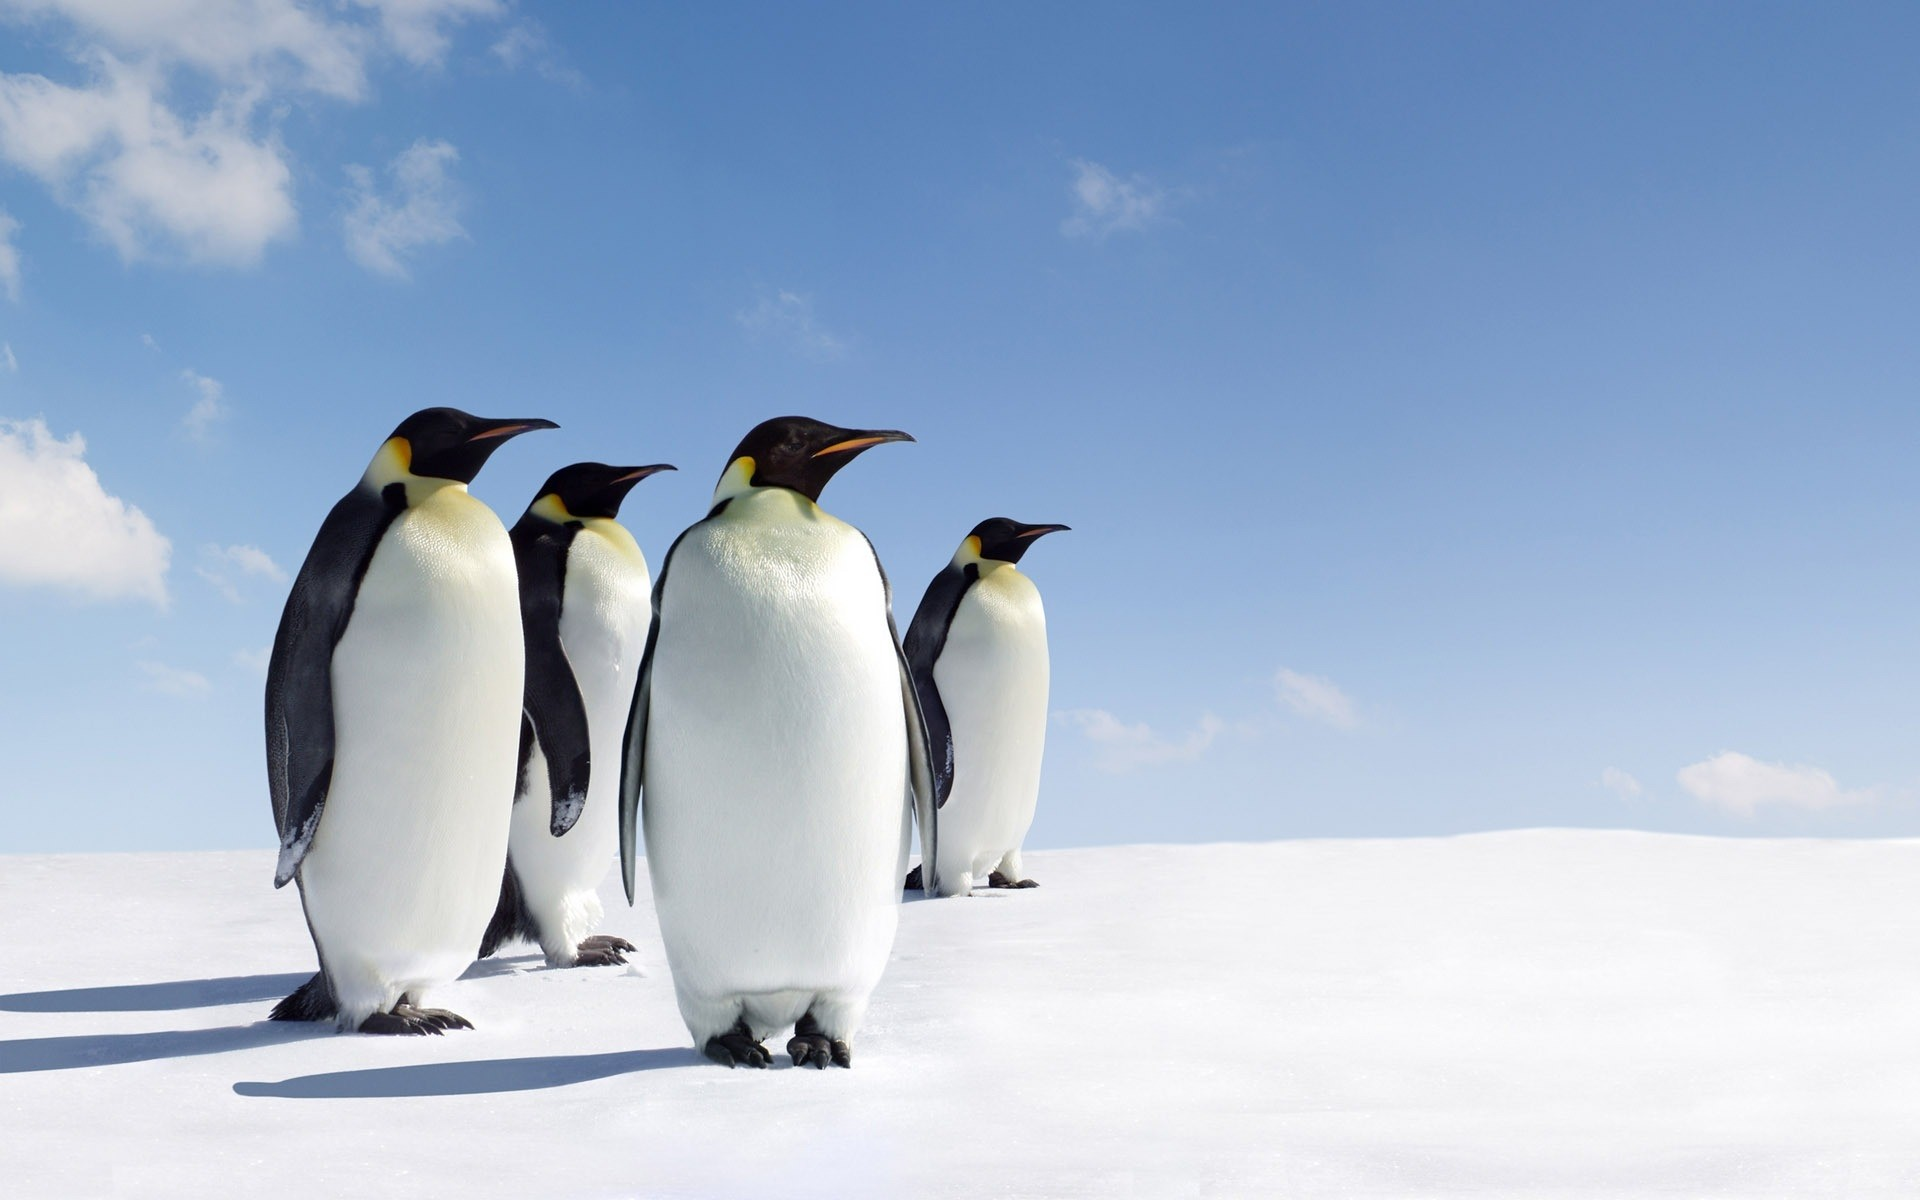 animals snow frosty bird winter wildlife ice cold penguins nature outdoors